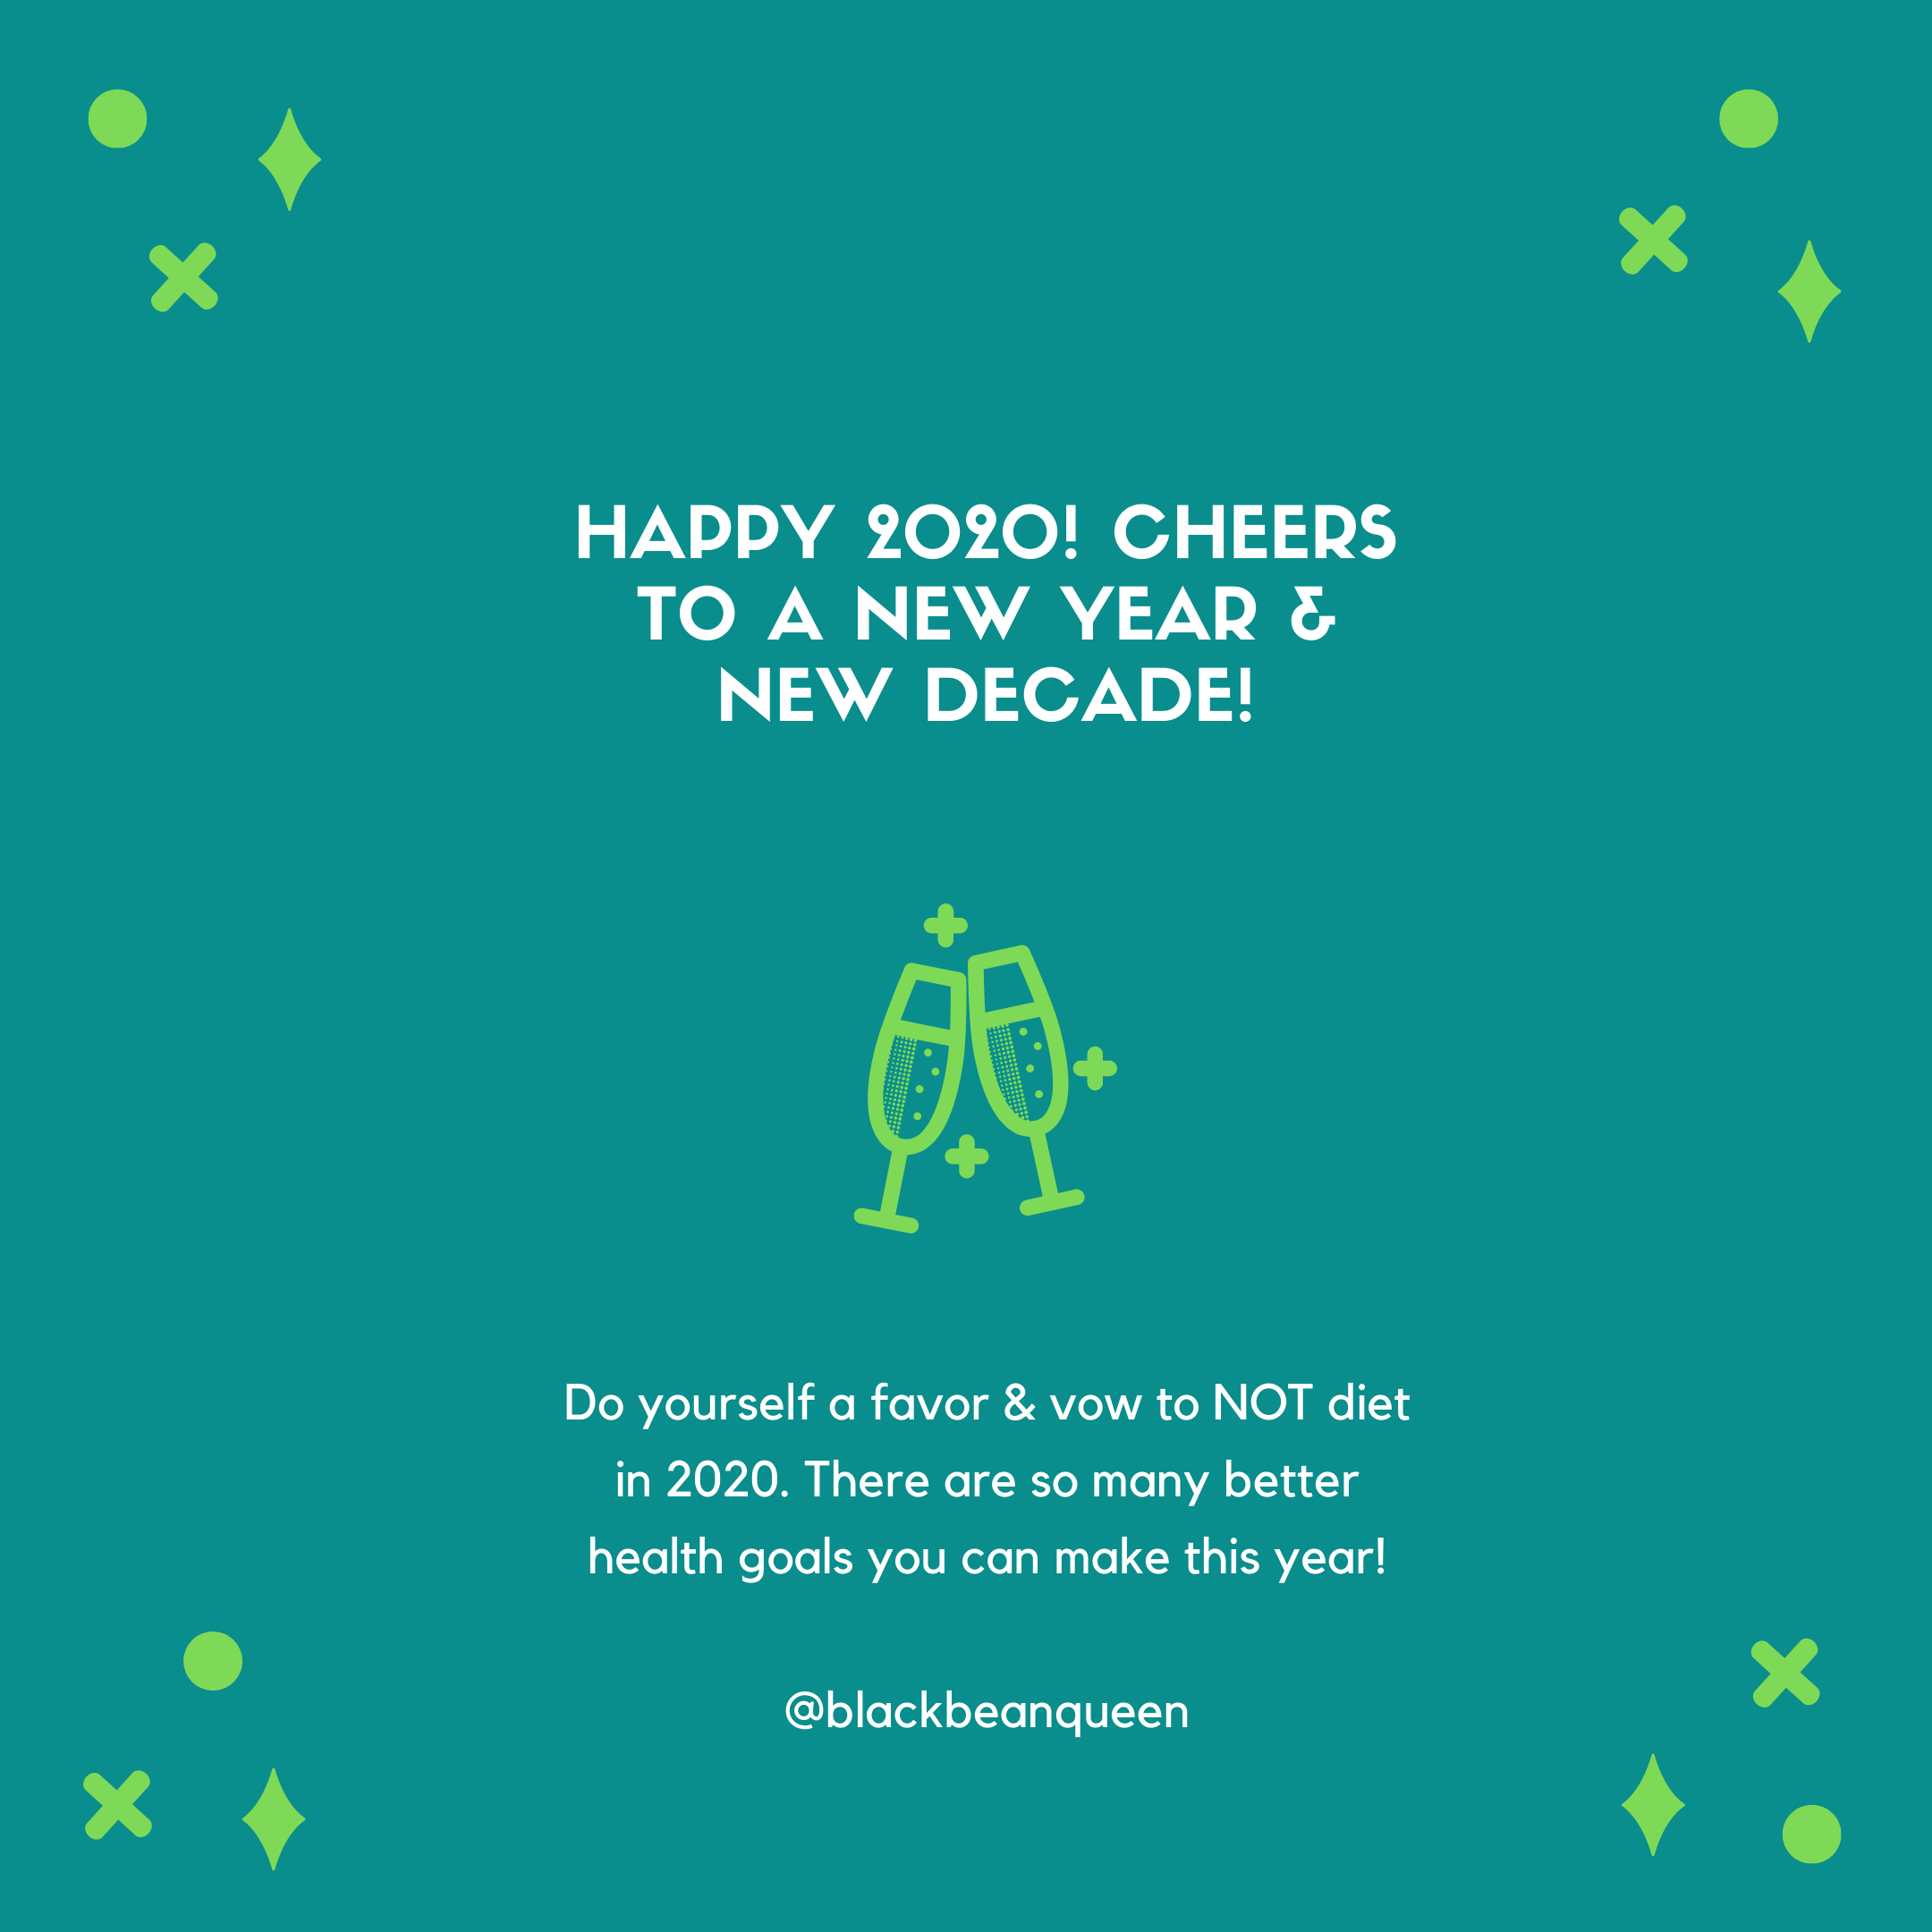 Happy 2020! Cheers to a new year & new decade!